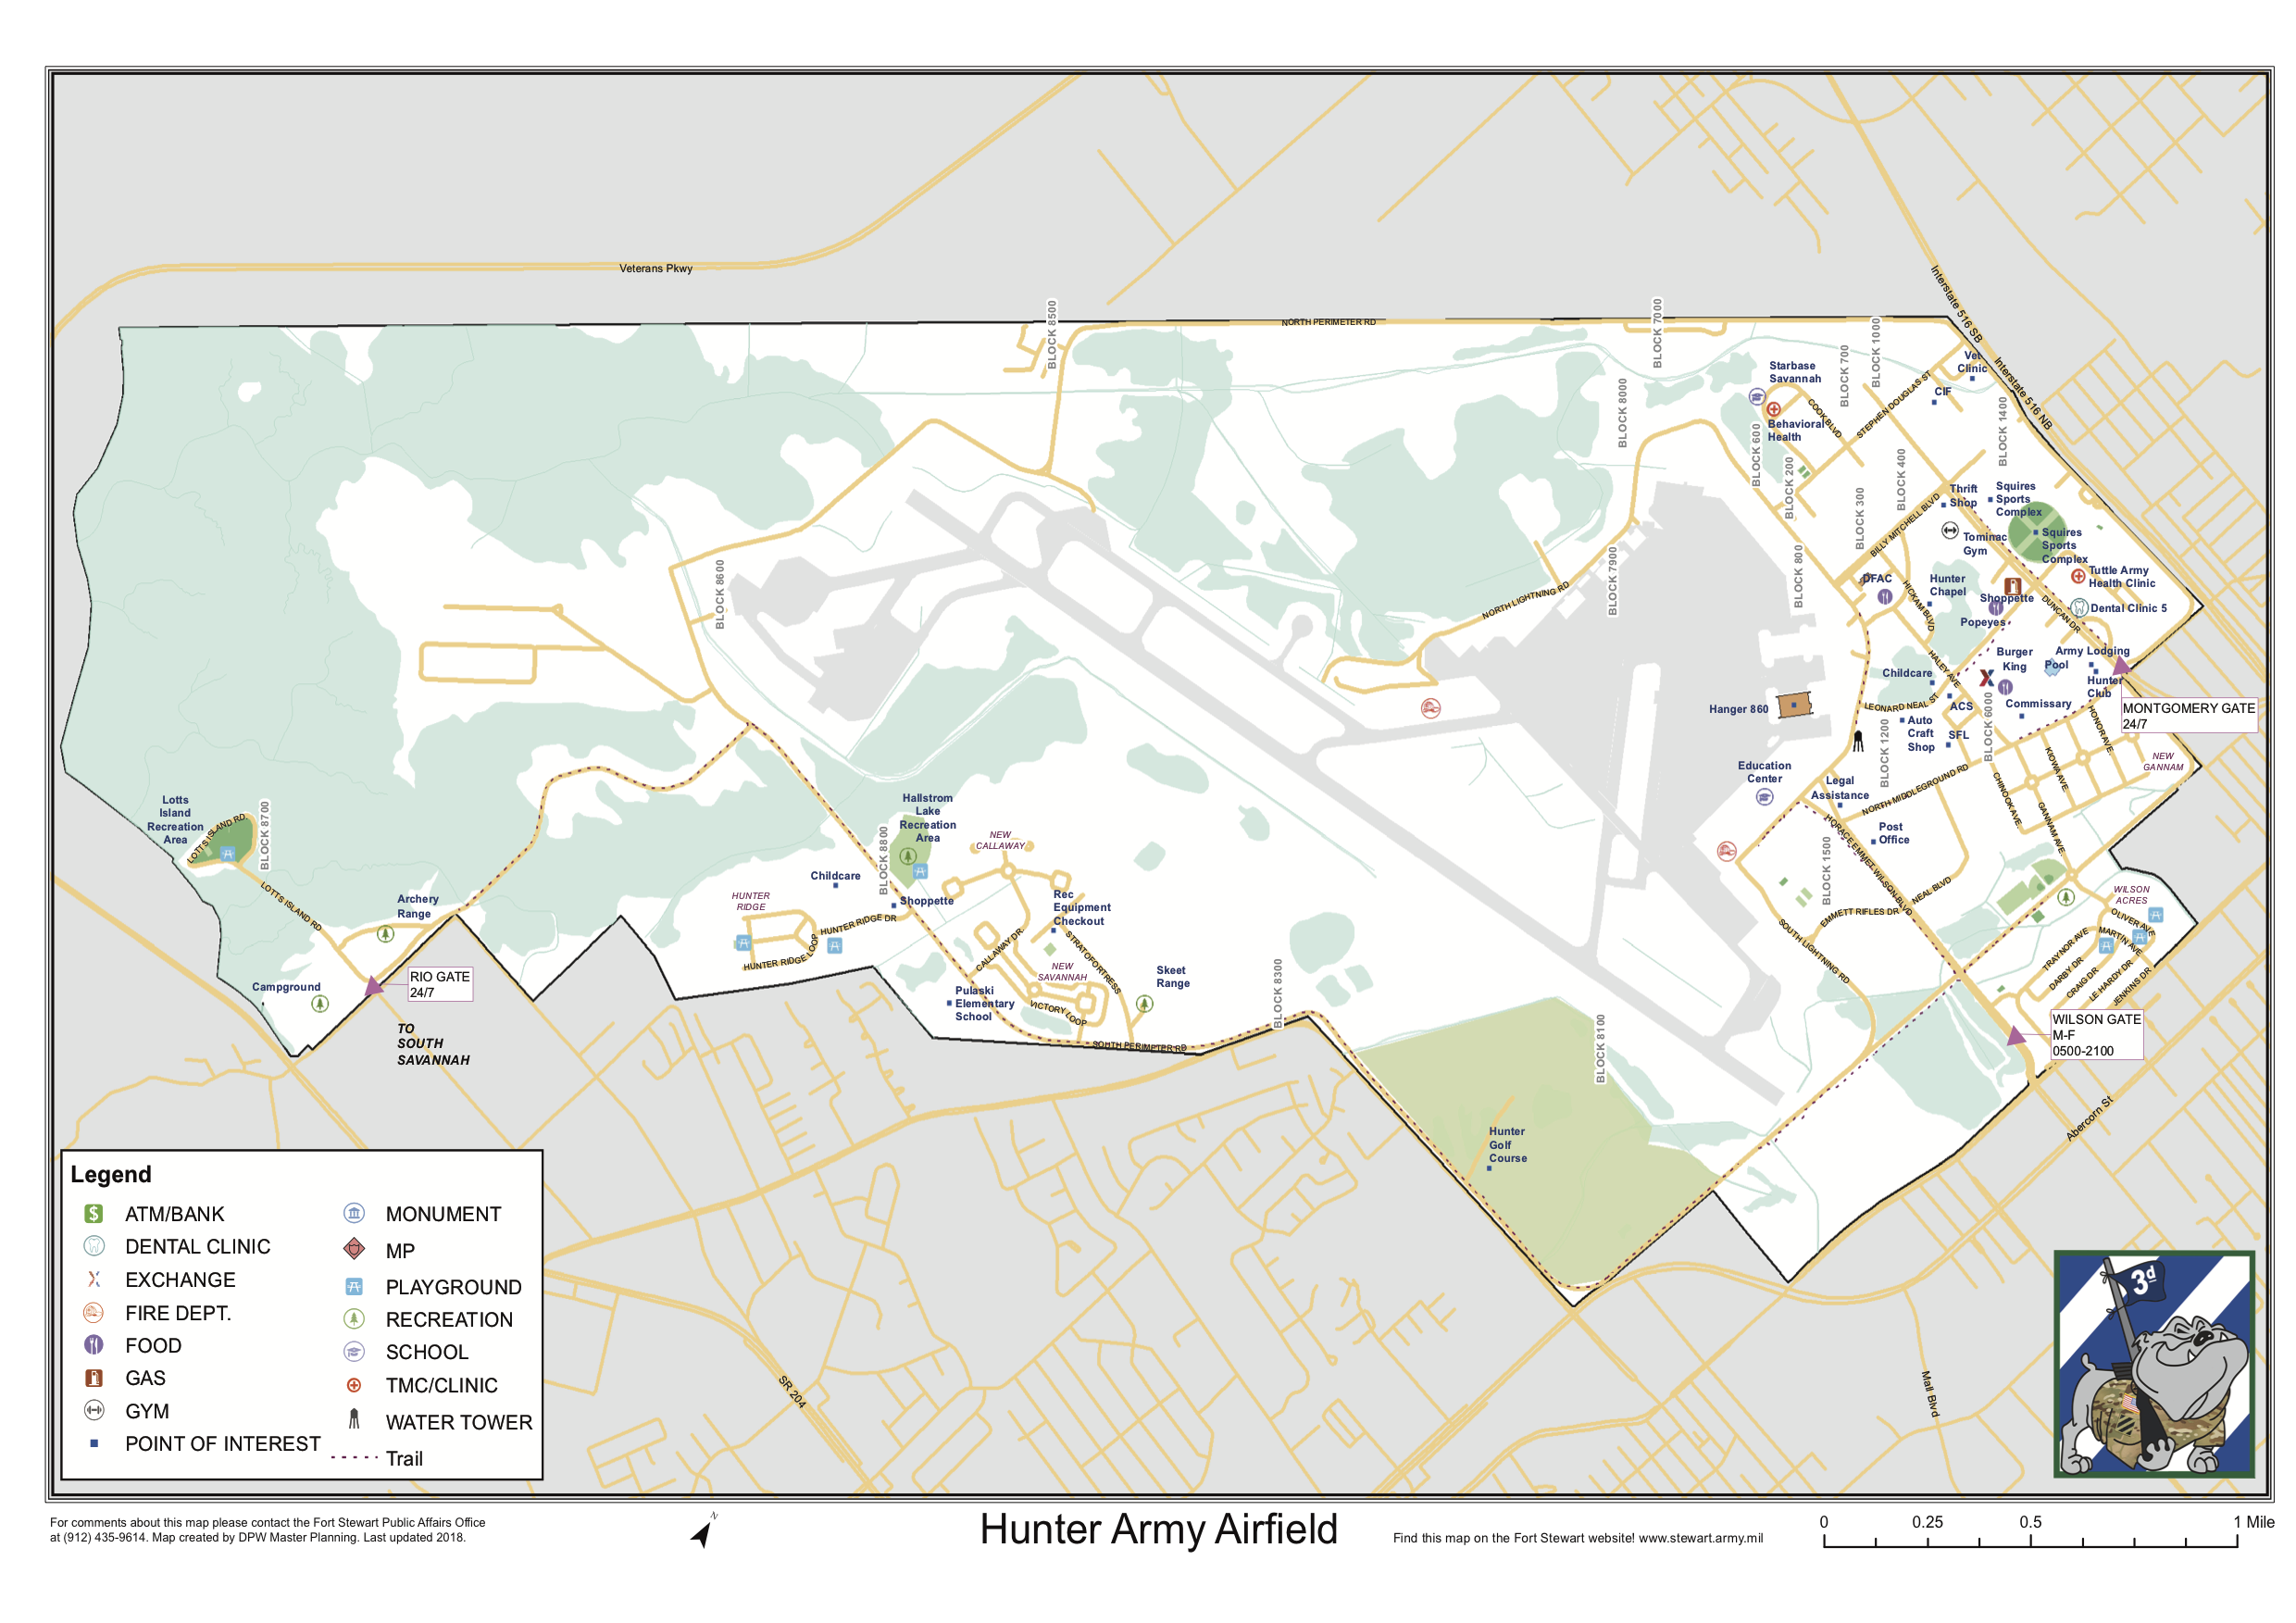 Map Of Hunter Army Airfield In Savannah Georgia